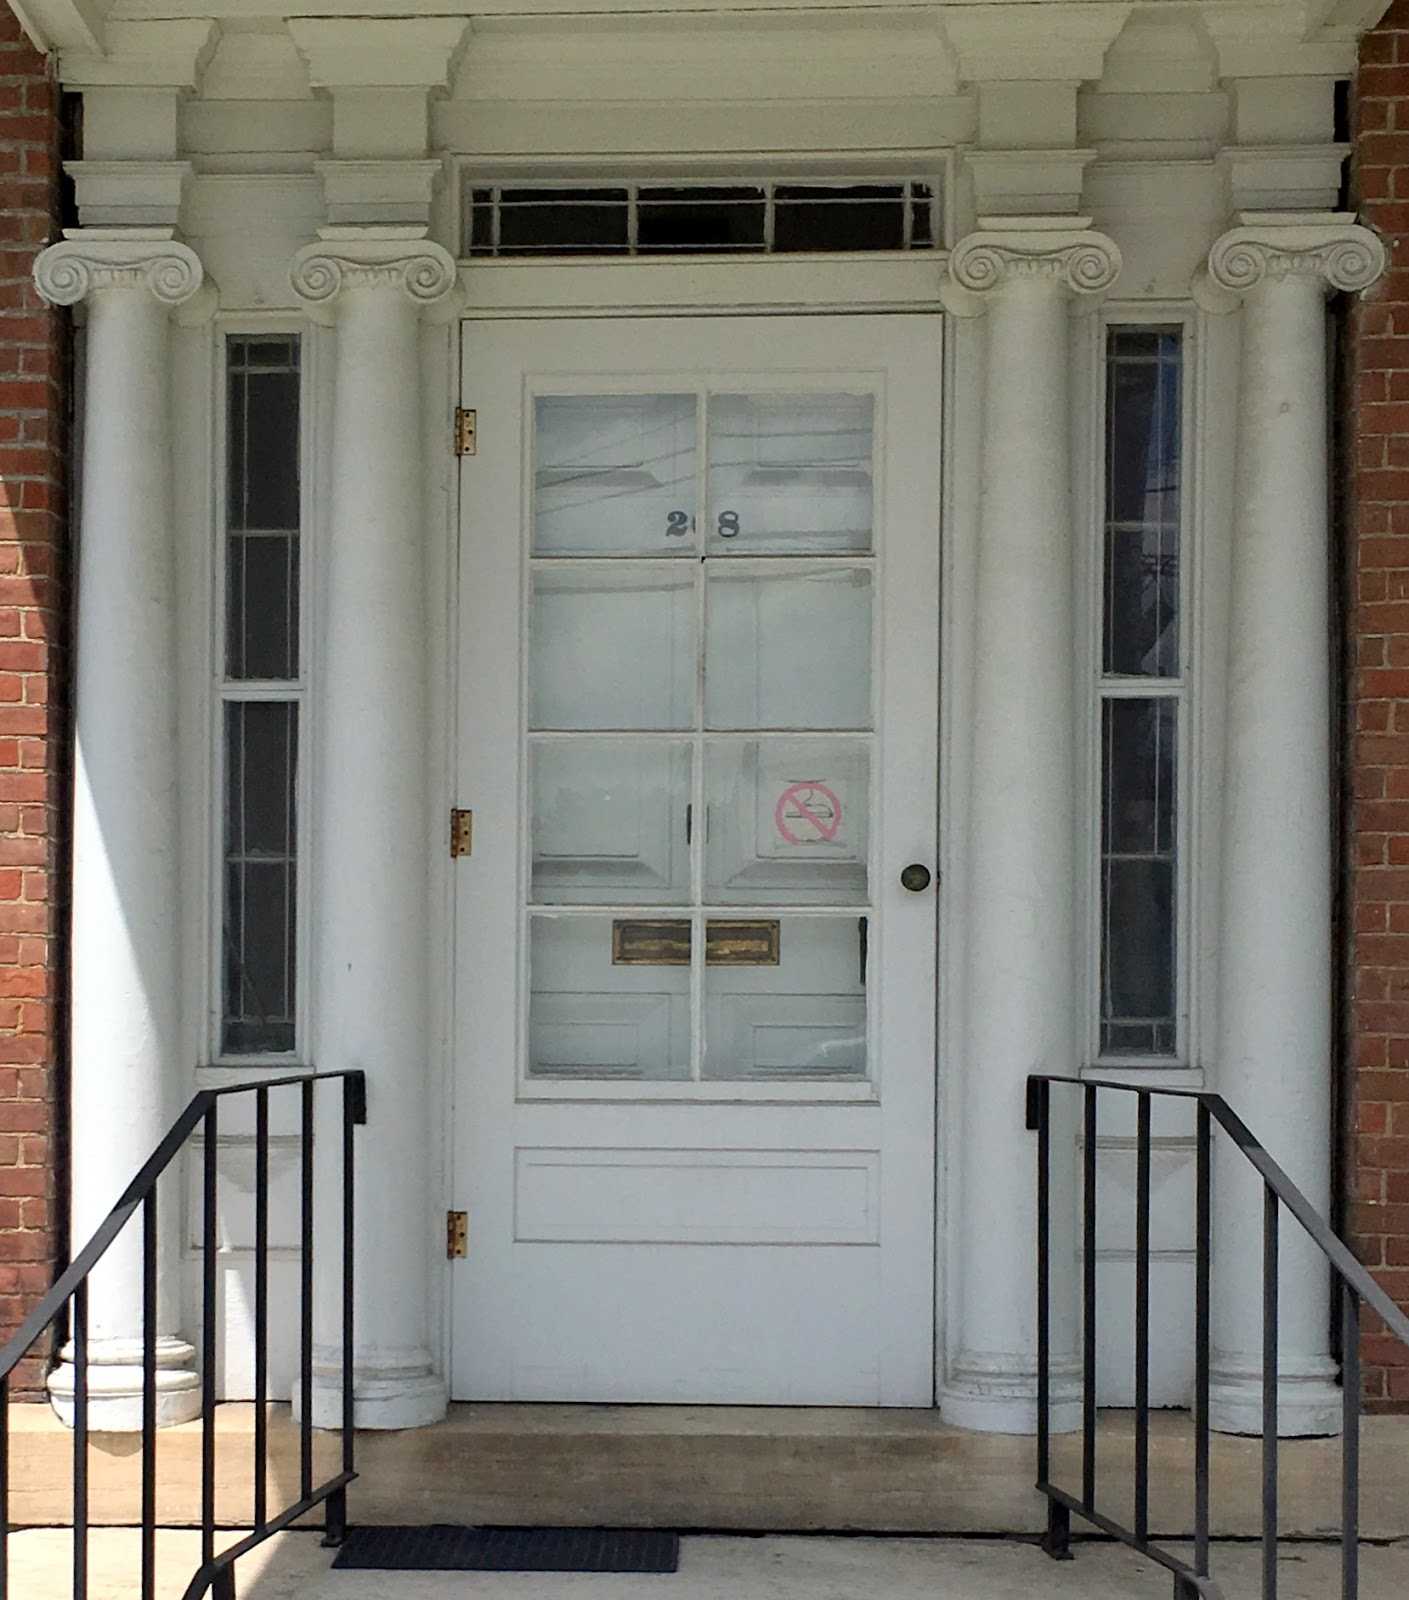 i wrote about its history in an earlier post http passingbyjgr blogspot com 2014 01 passing by norton fenton house html